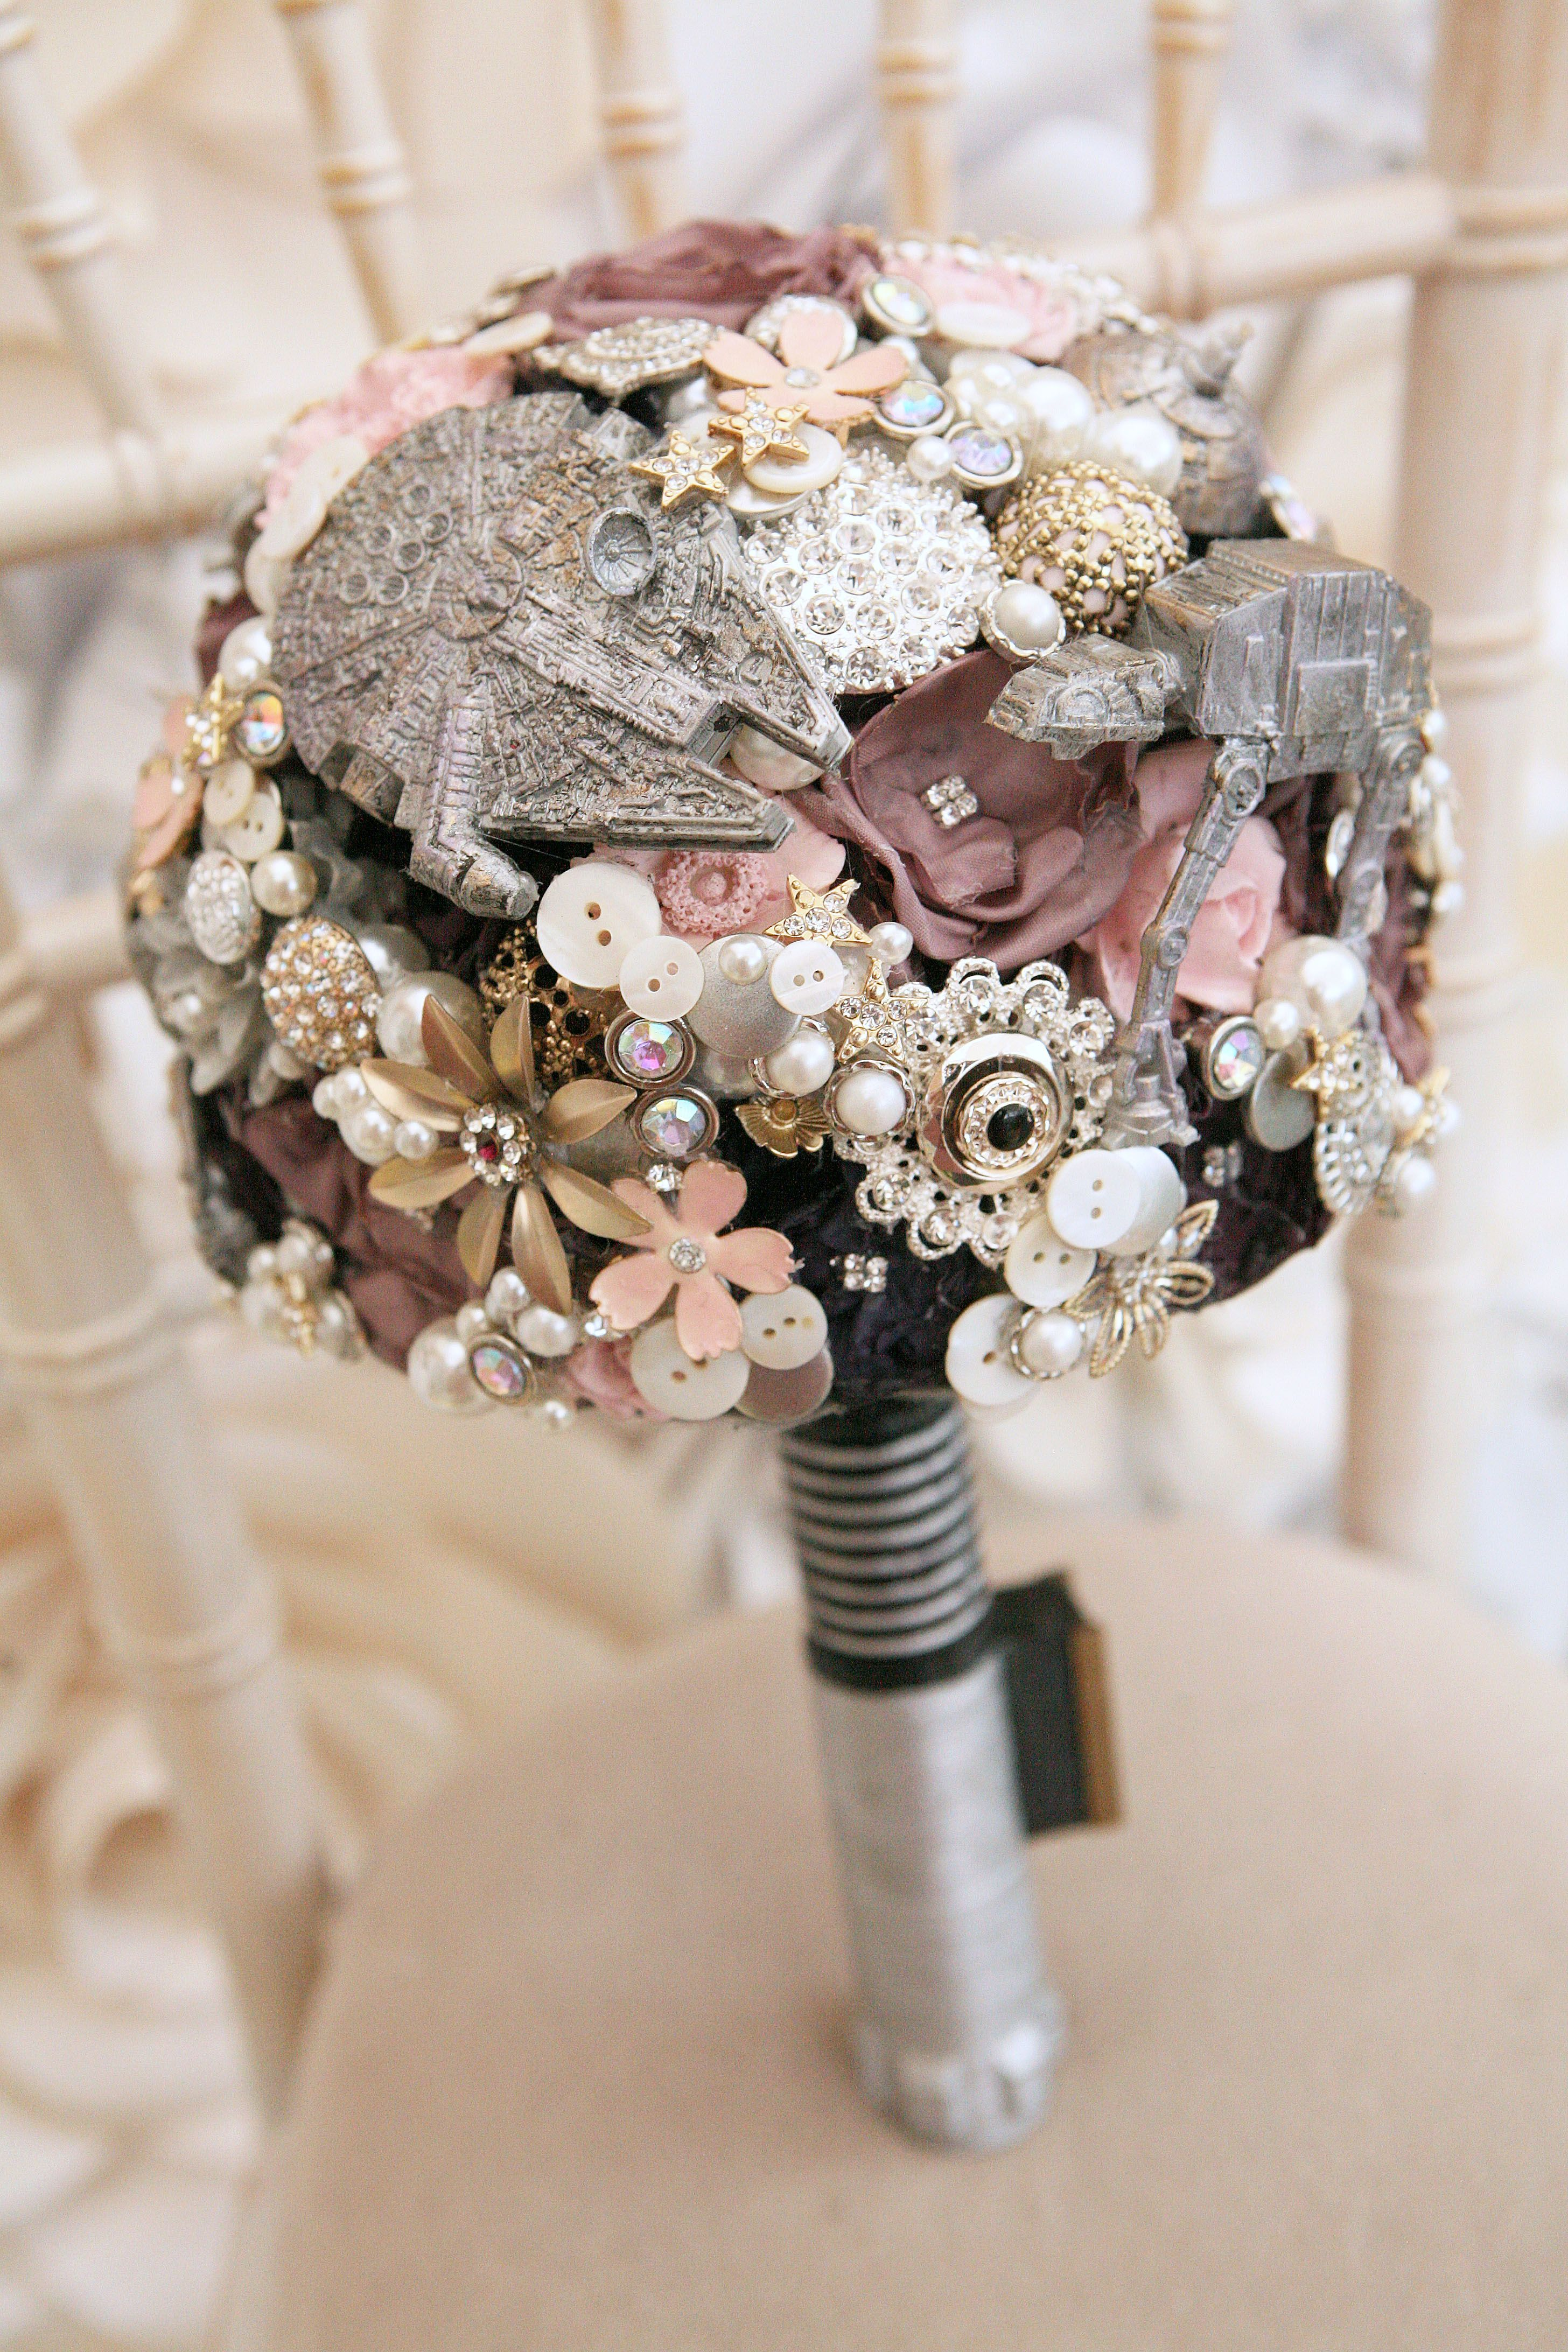 Star wars themed brooch bouquet complete with light sabers handle by star wars themed brooch bouquet complete with light sabers handle by maddison rocks floral sculpture izmirmasajfo